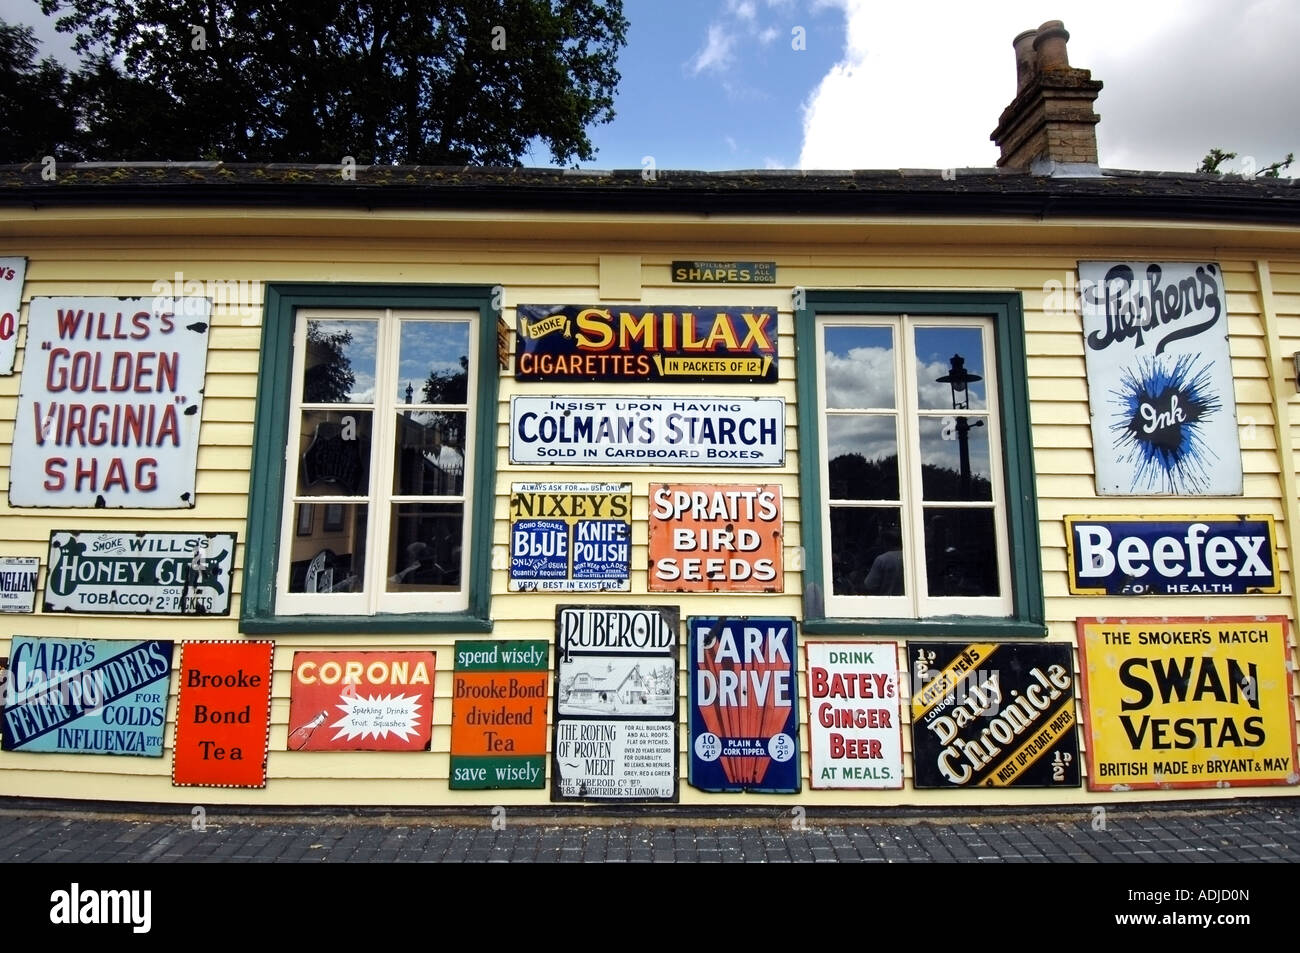 Old fashioned enamel advertising signs dating from 1920 to 1960 on a Victorian station at a railway museum - Stock Image